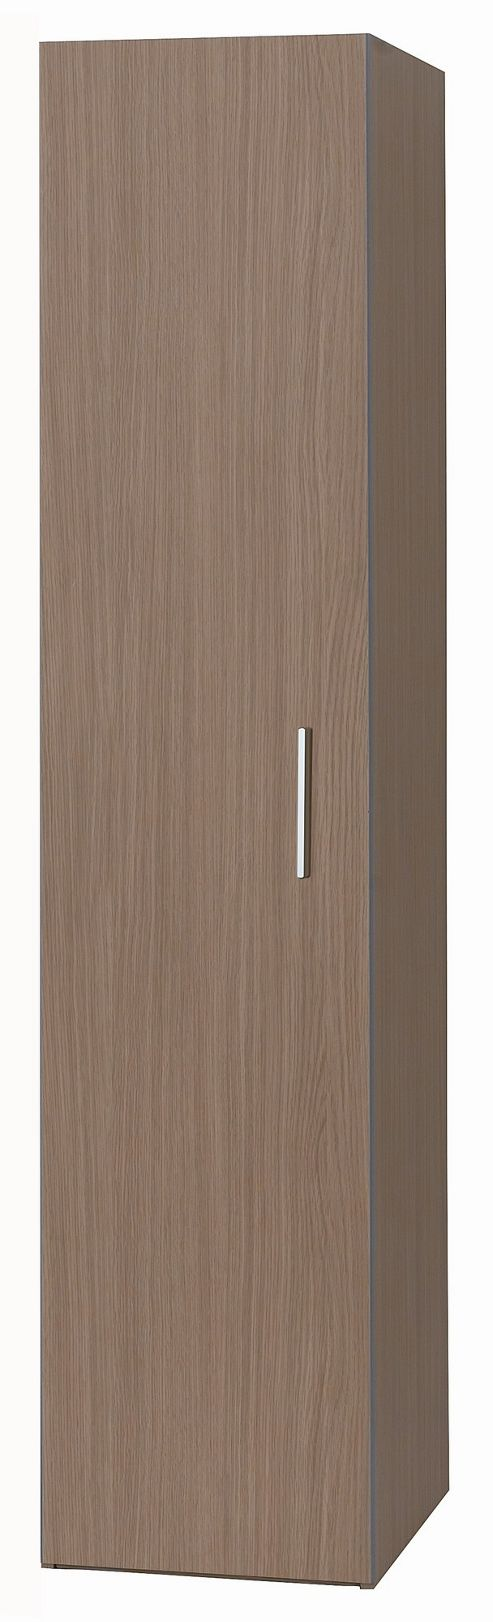 Alto Furniture Mode Single Wardrobe